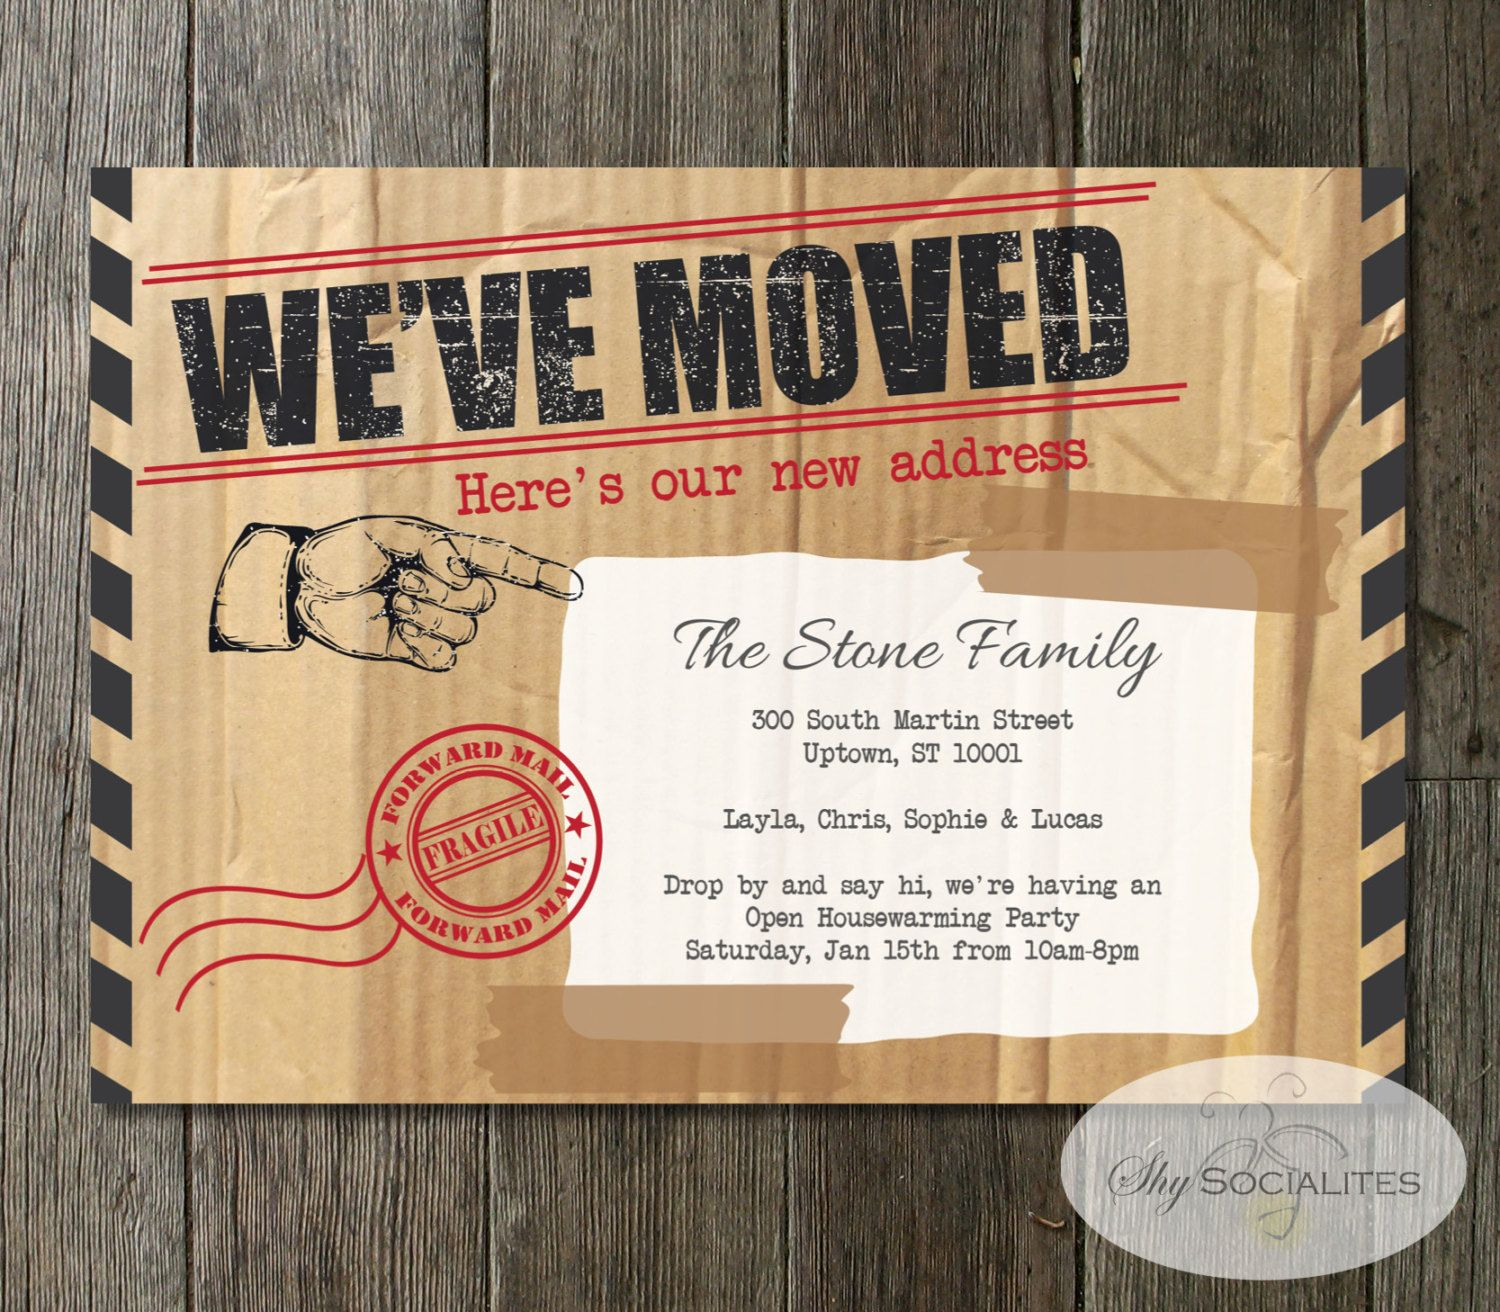 We've Moved Announcement Moving Box, Cardboard, Forward